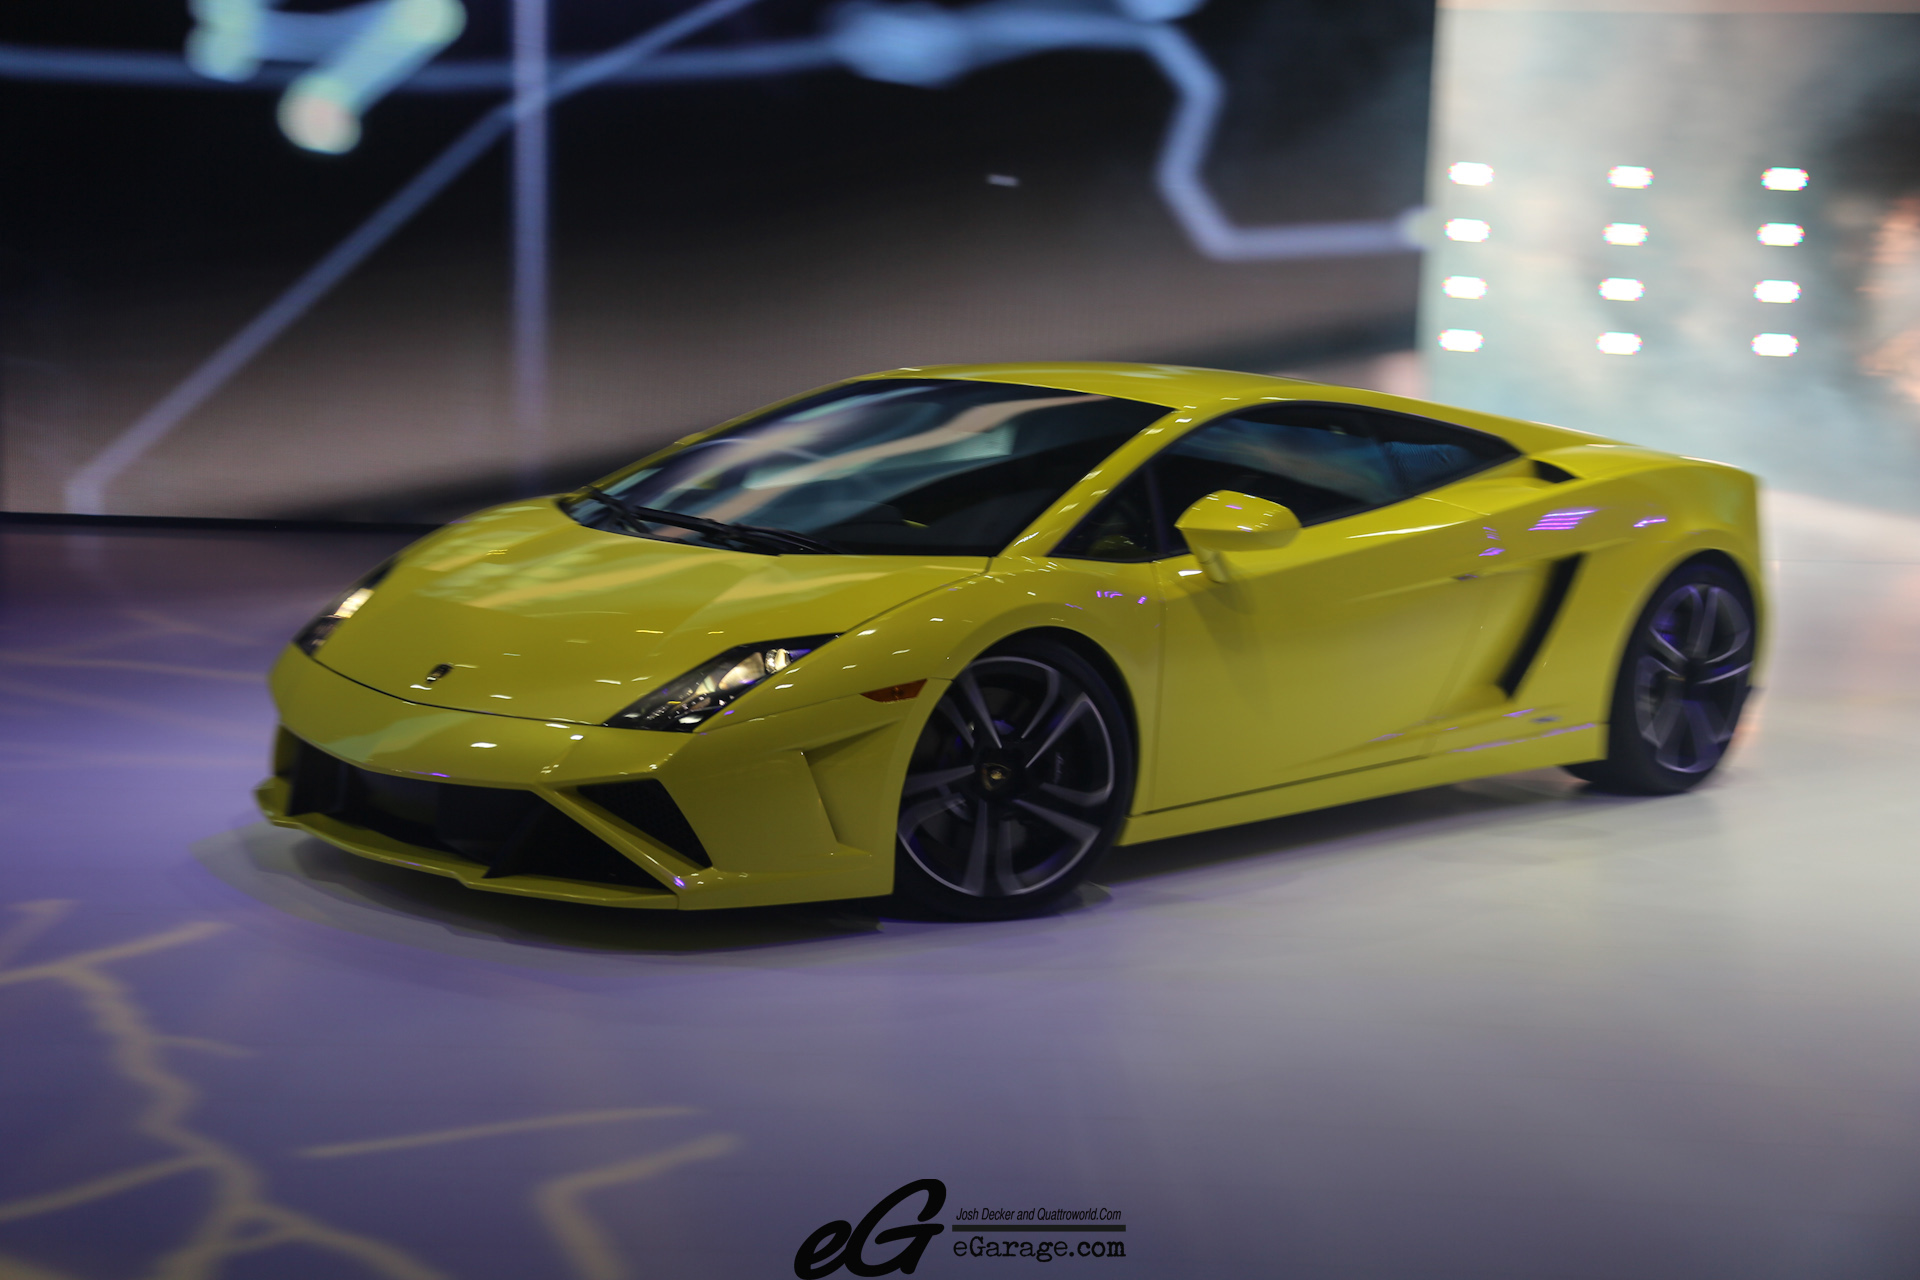 8030389089 0b6c27fb99 o 2012 Paris Motor Show